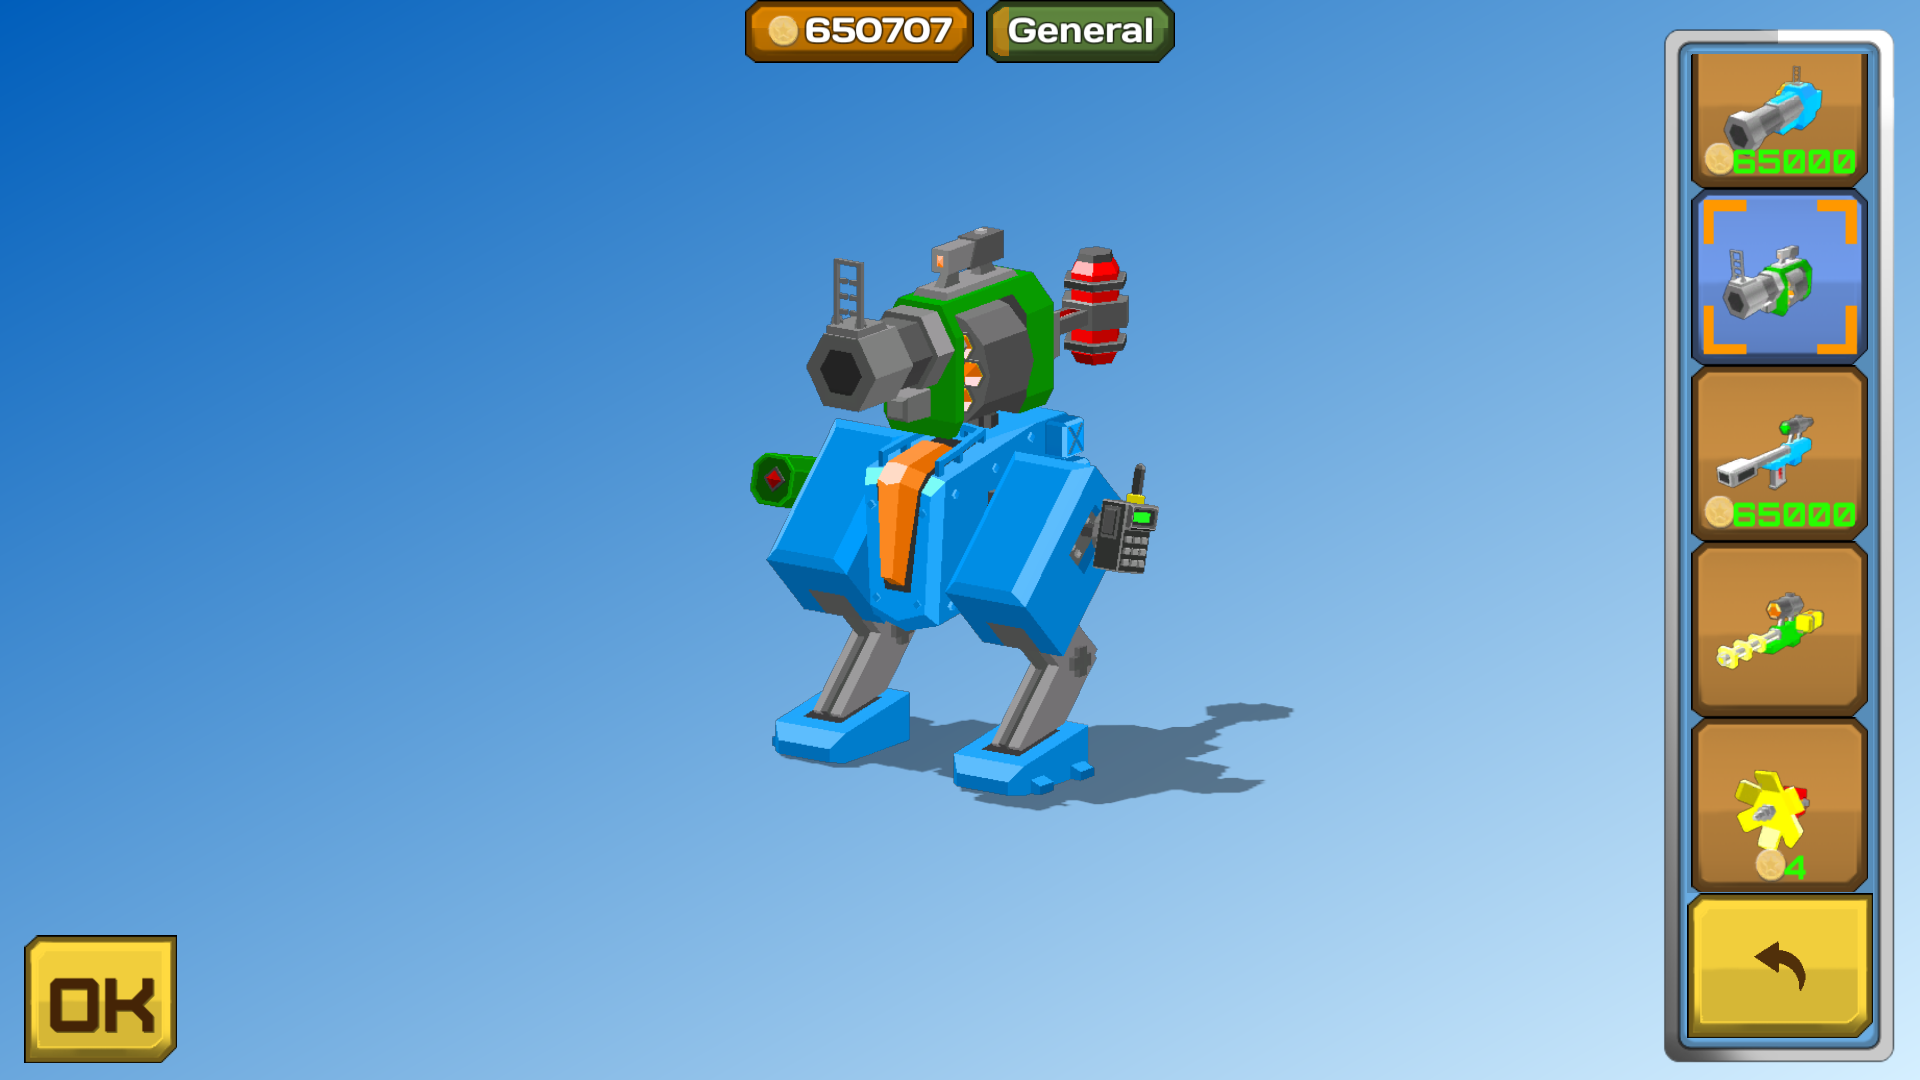 Bipedal mech with automatic grenade launcher